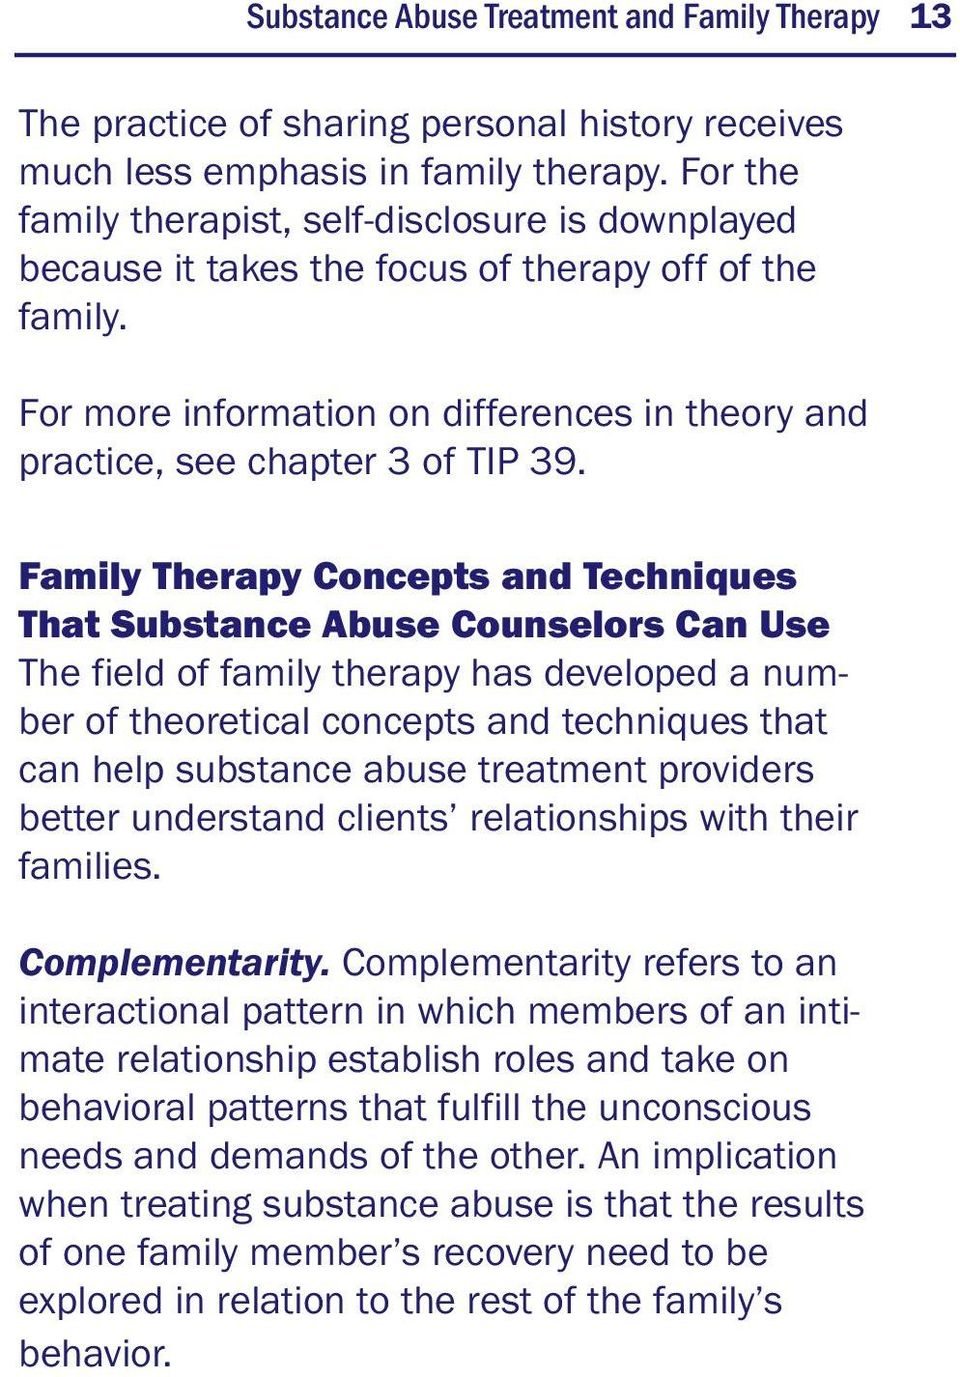 Family Therapy Concepts and Techniques That Substance Abuse Counselors Can Use The field of family therapy has developed a number of theoretical concepts and techniques that can help substance abuse